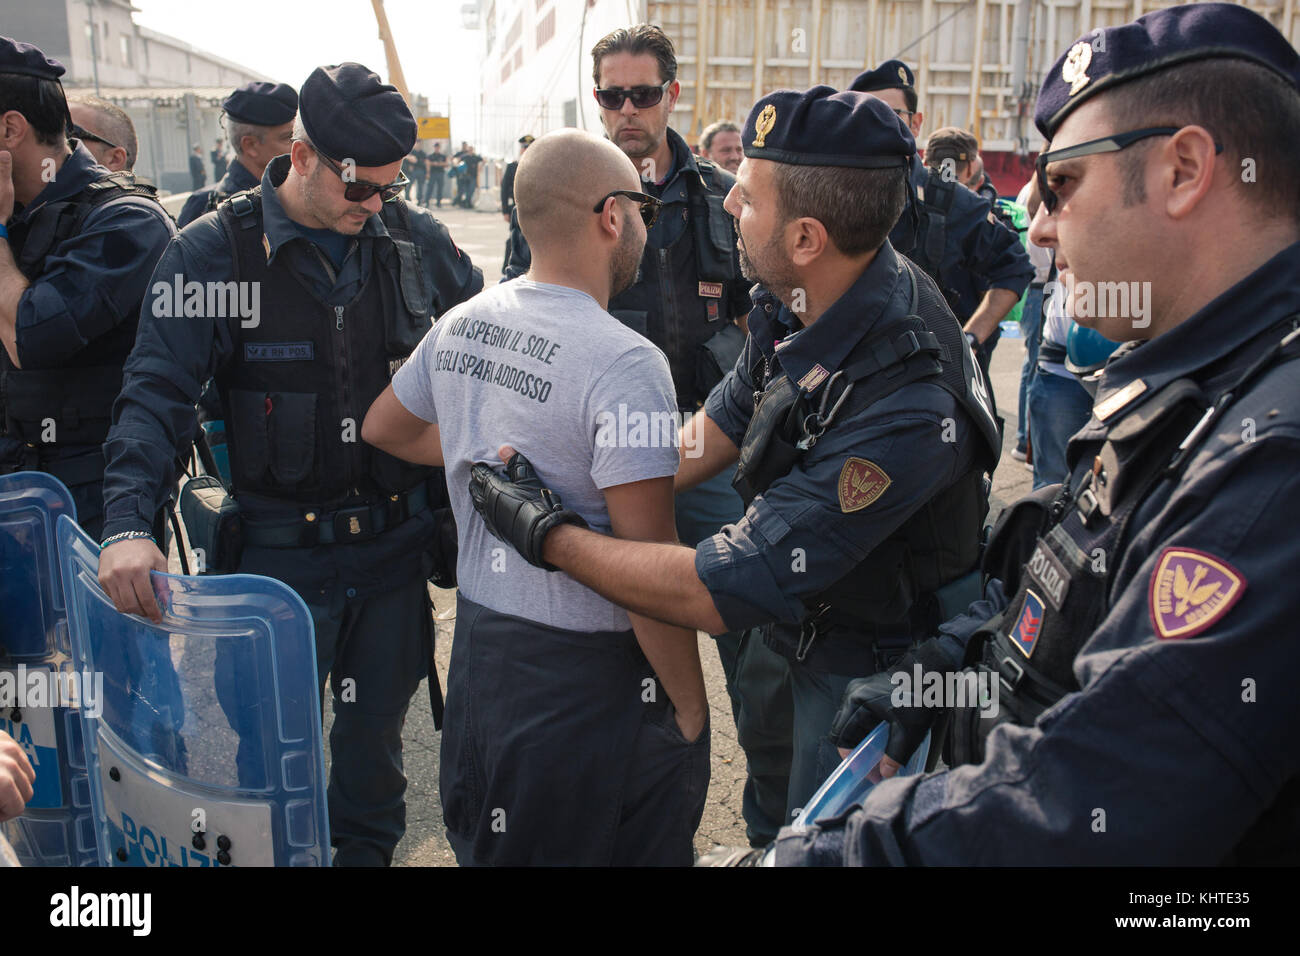 The 'NO G7' protest group at the port of Naples, ready to embark for Ischia, where the G7 Meeting of Interior Ministers - Stock Image